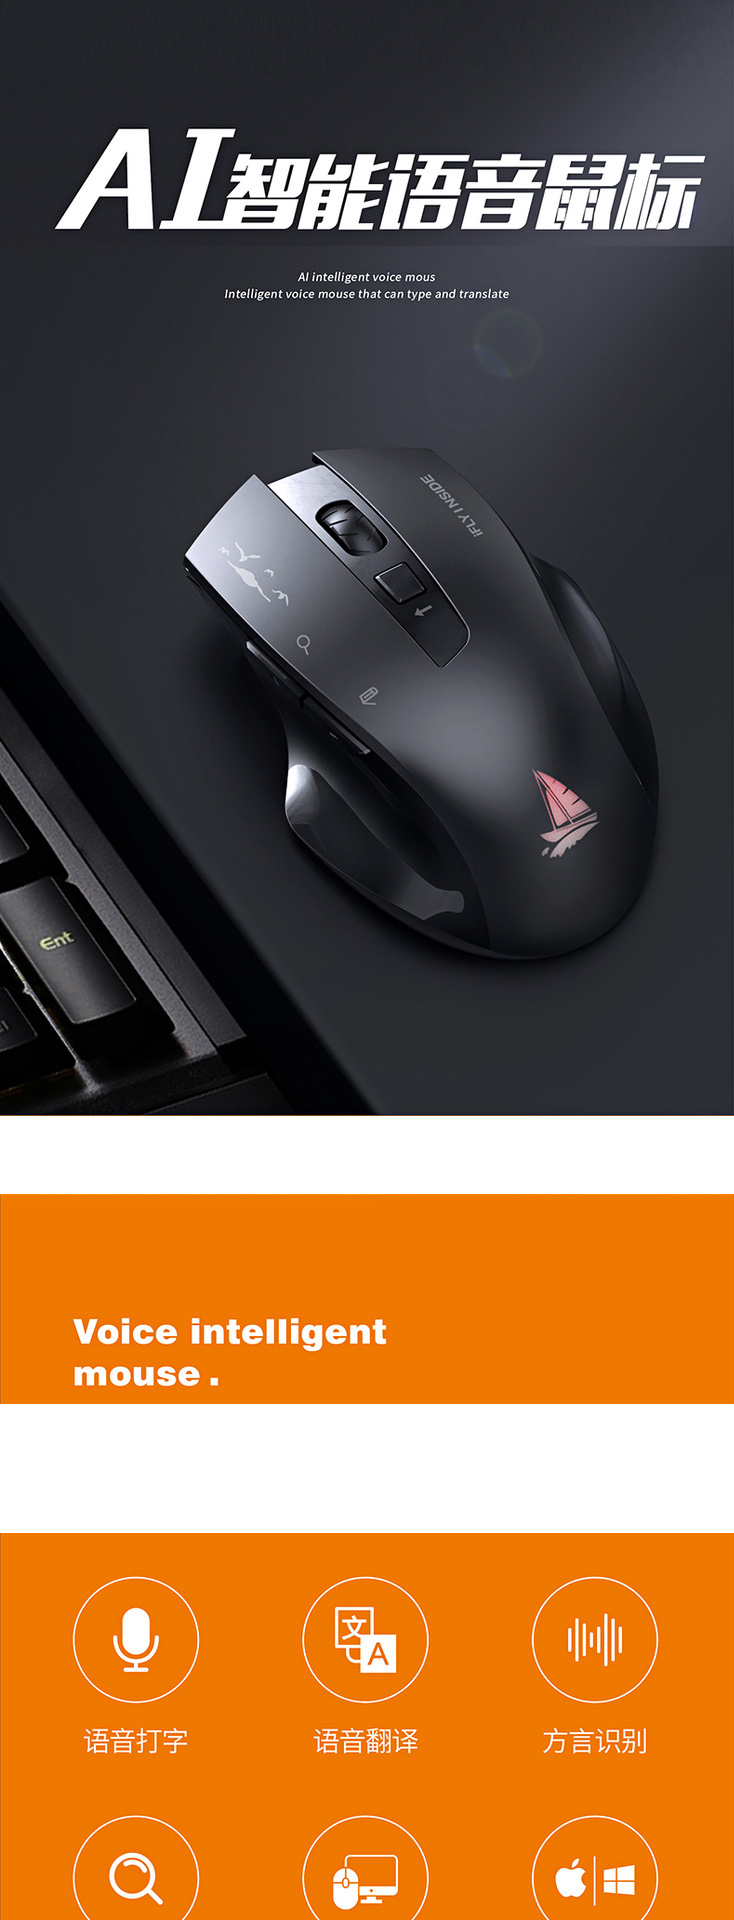 wireless mouse (1).jpg